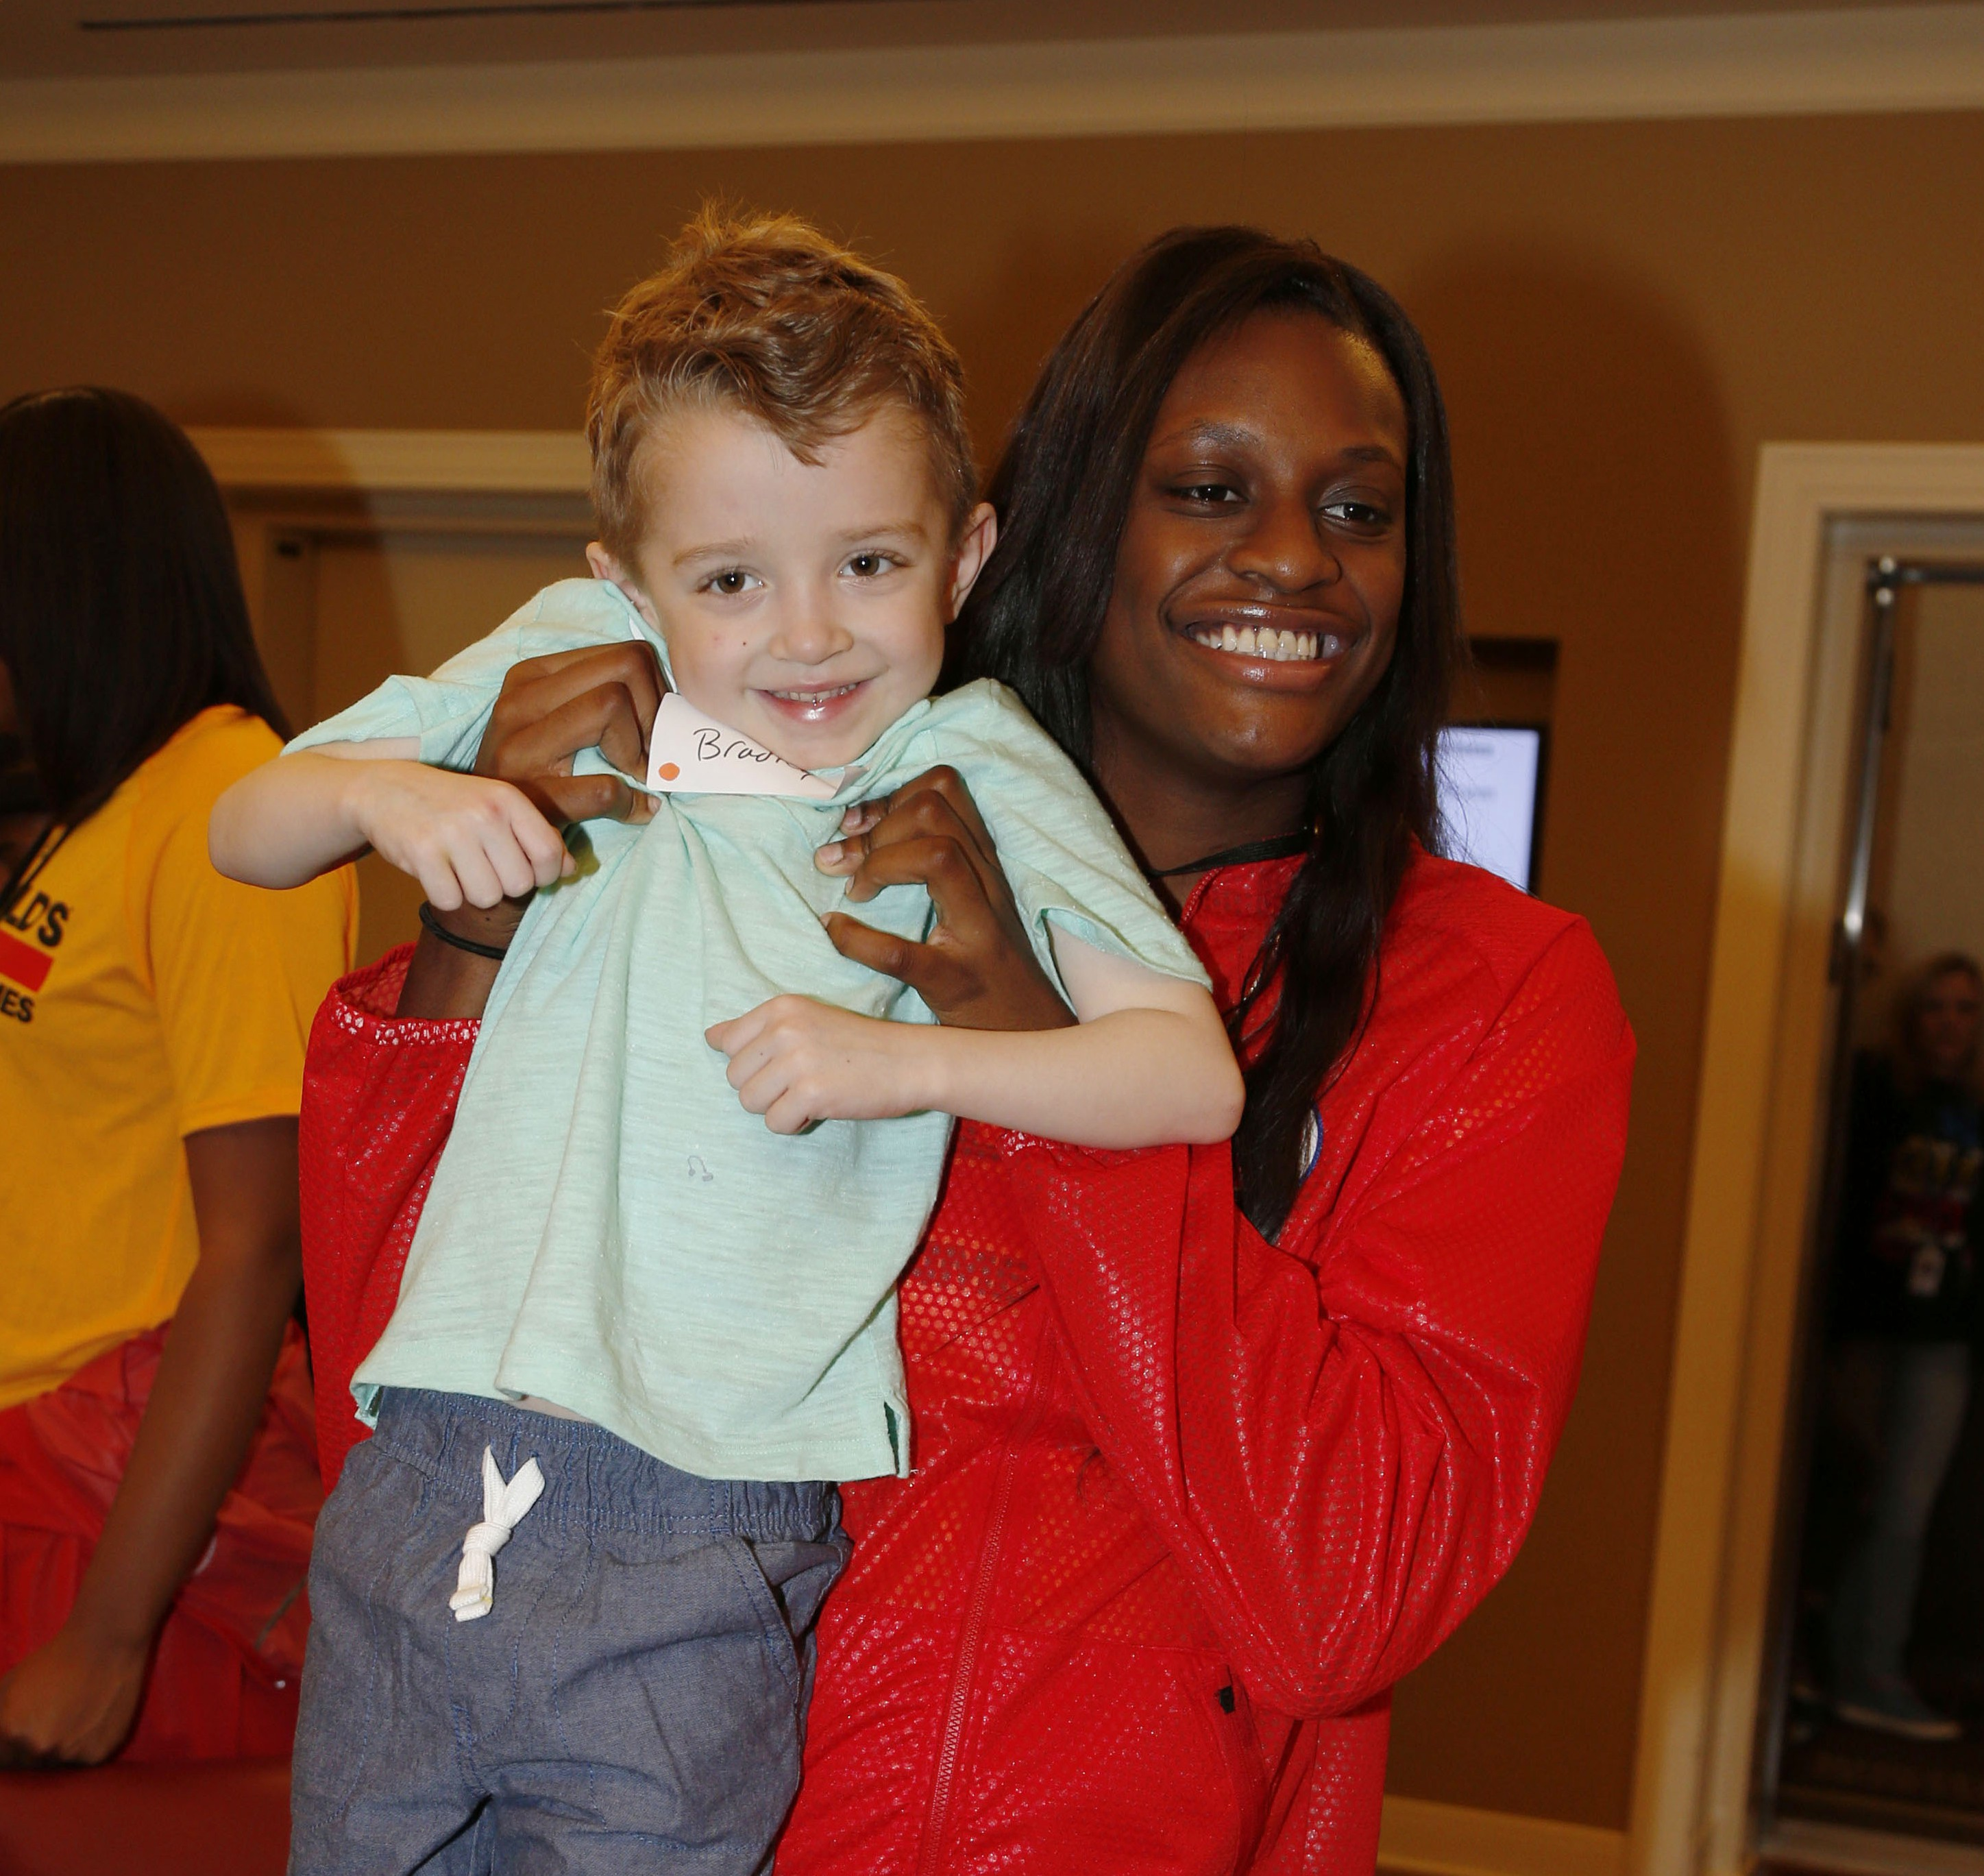 Joyner Holmes poses for a photo with Bradley Godish at the Ronald McDonald House in Chicago. (Photo: Brian Spurlock, USA TODAY Sports)